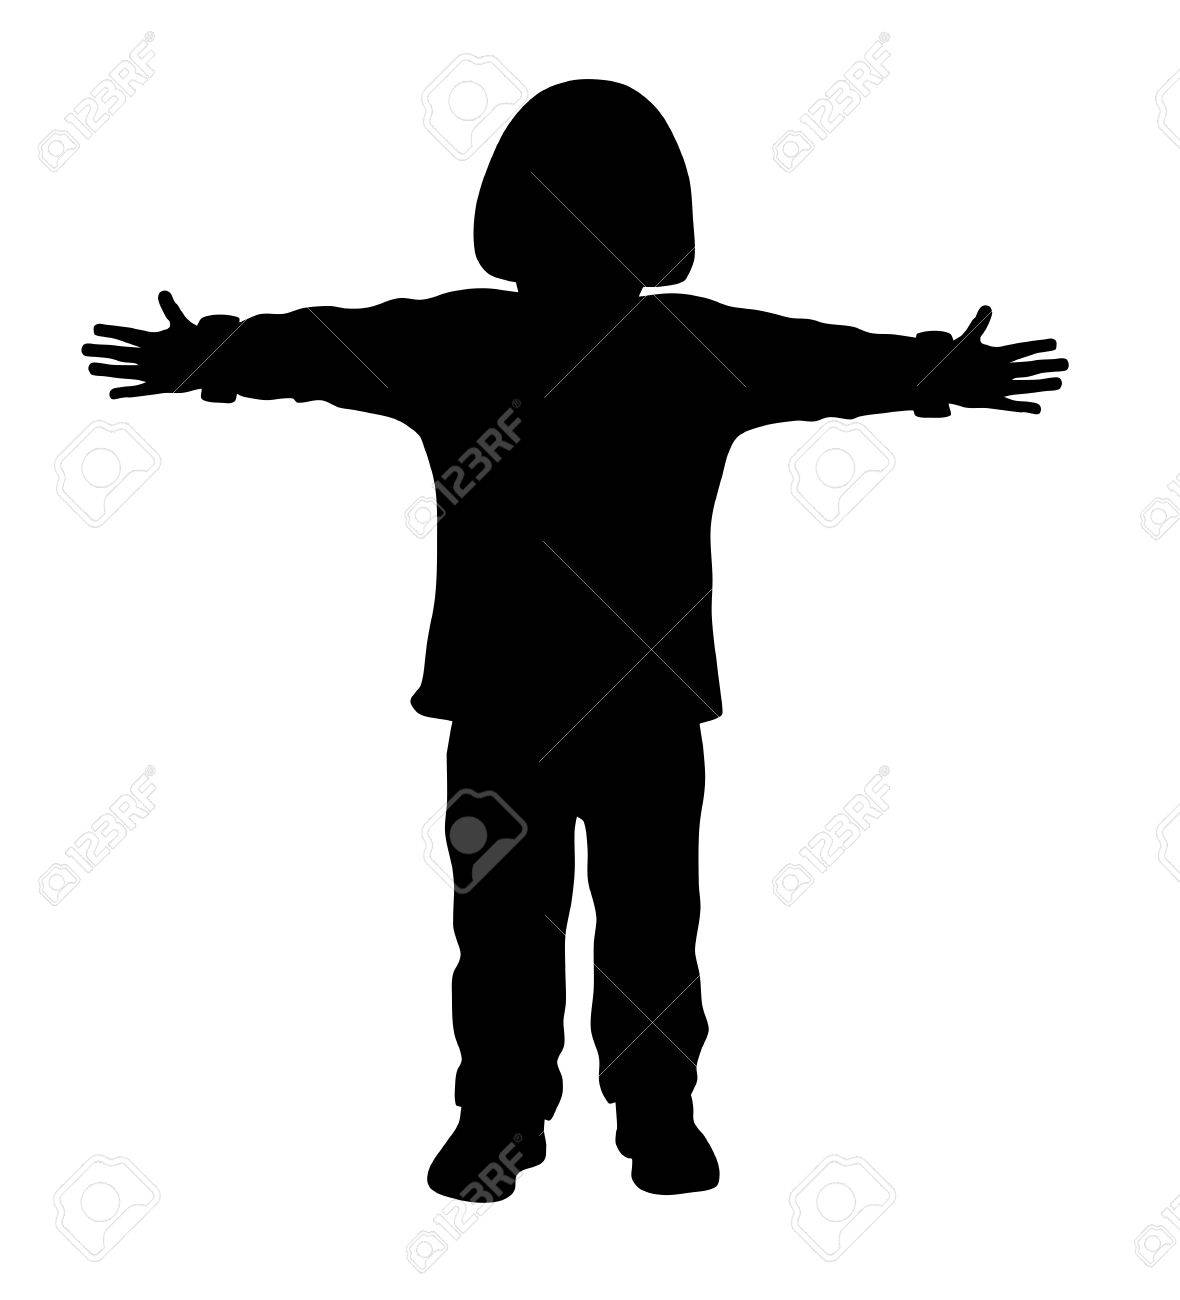 Vector illustration of little kid with outstretched arms.